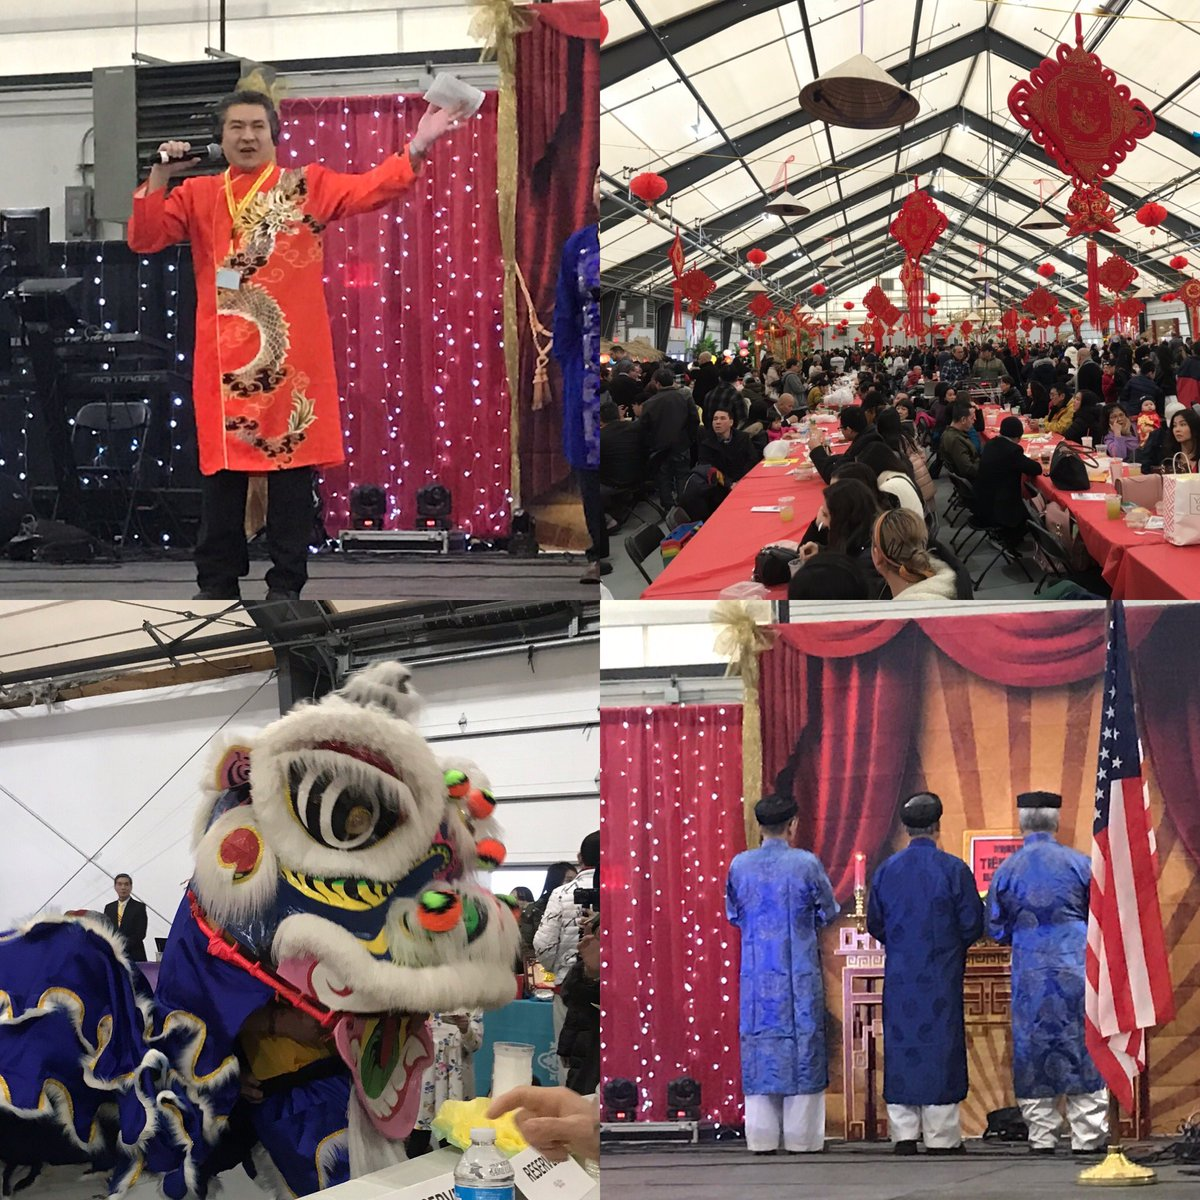 Another great celebration for Hội Chợ Tết 2020 - Vietnamese New Year Festival, organized by my good friend Tai Shaw and an army of volunteers. So much great food, music, dance, and culture. I really enjoyed the dragon dance, and the offering of gifts in ancestor worship 🐉💃🏽